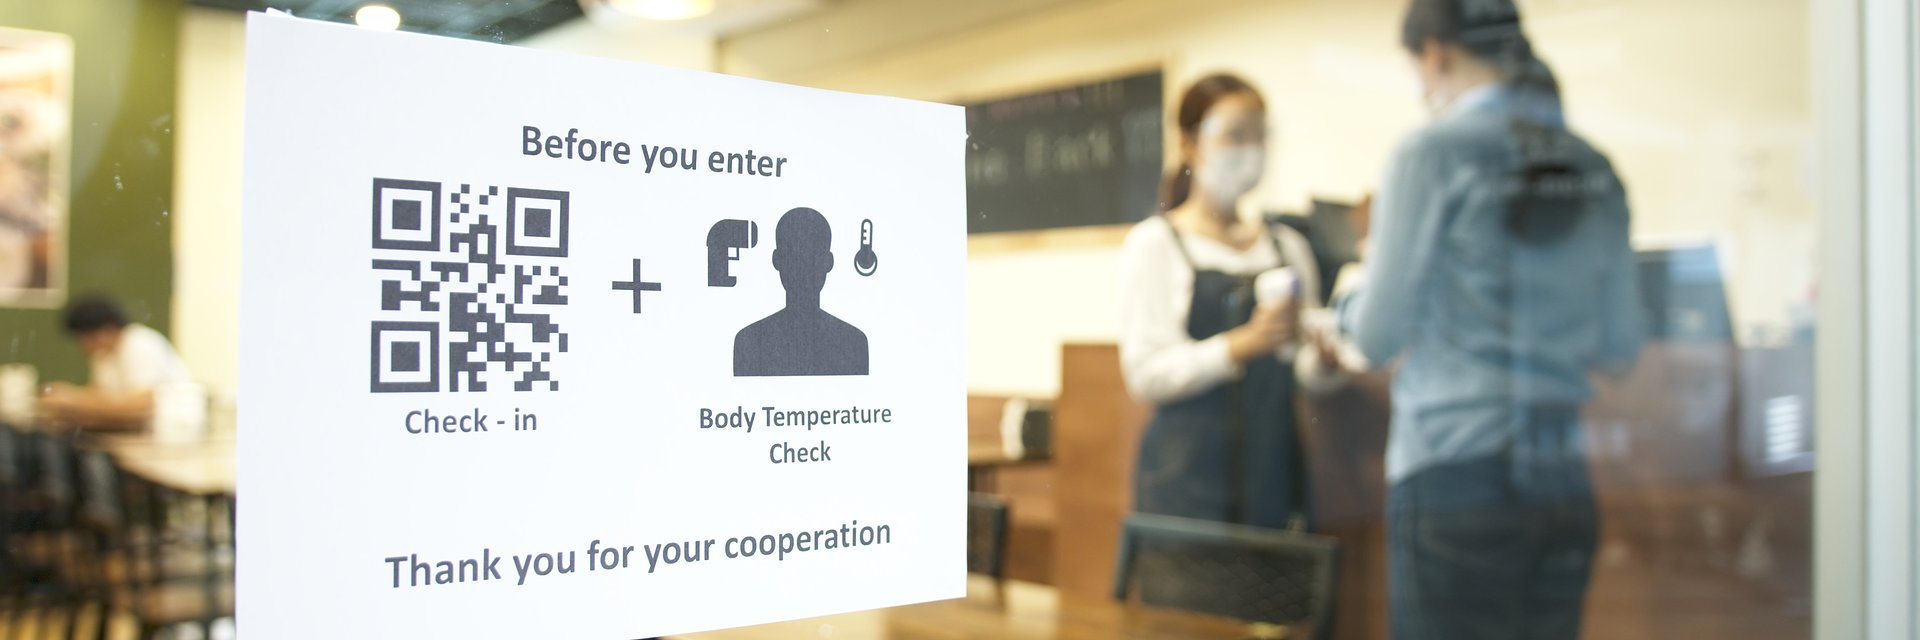 How Are Restaurants and Businesses Coping During the COVID-19 Pandemic?